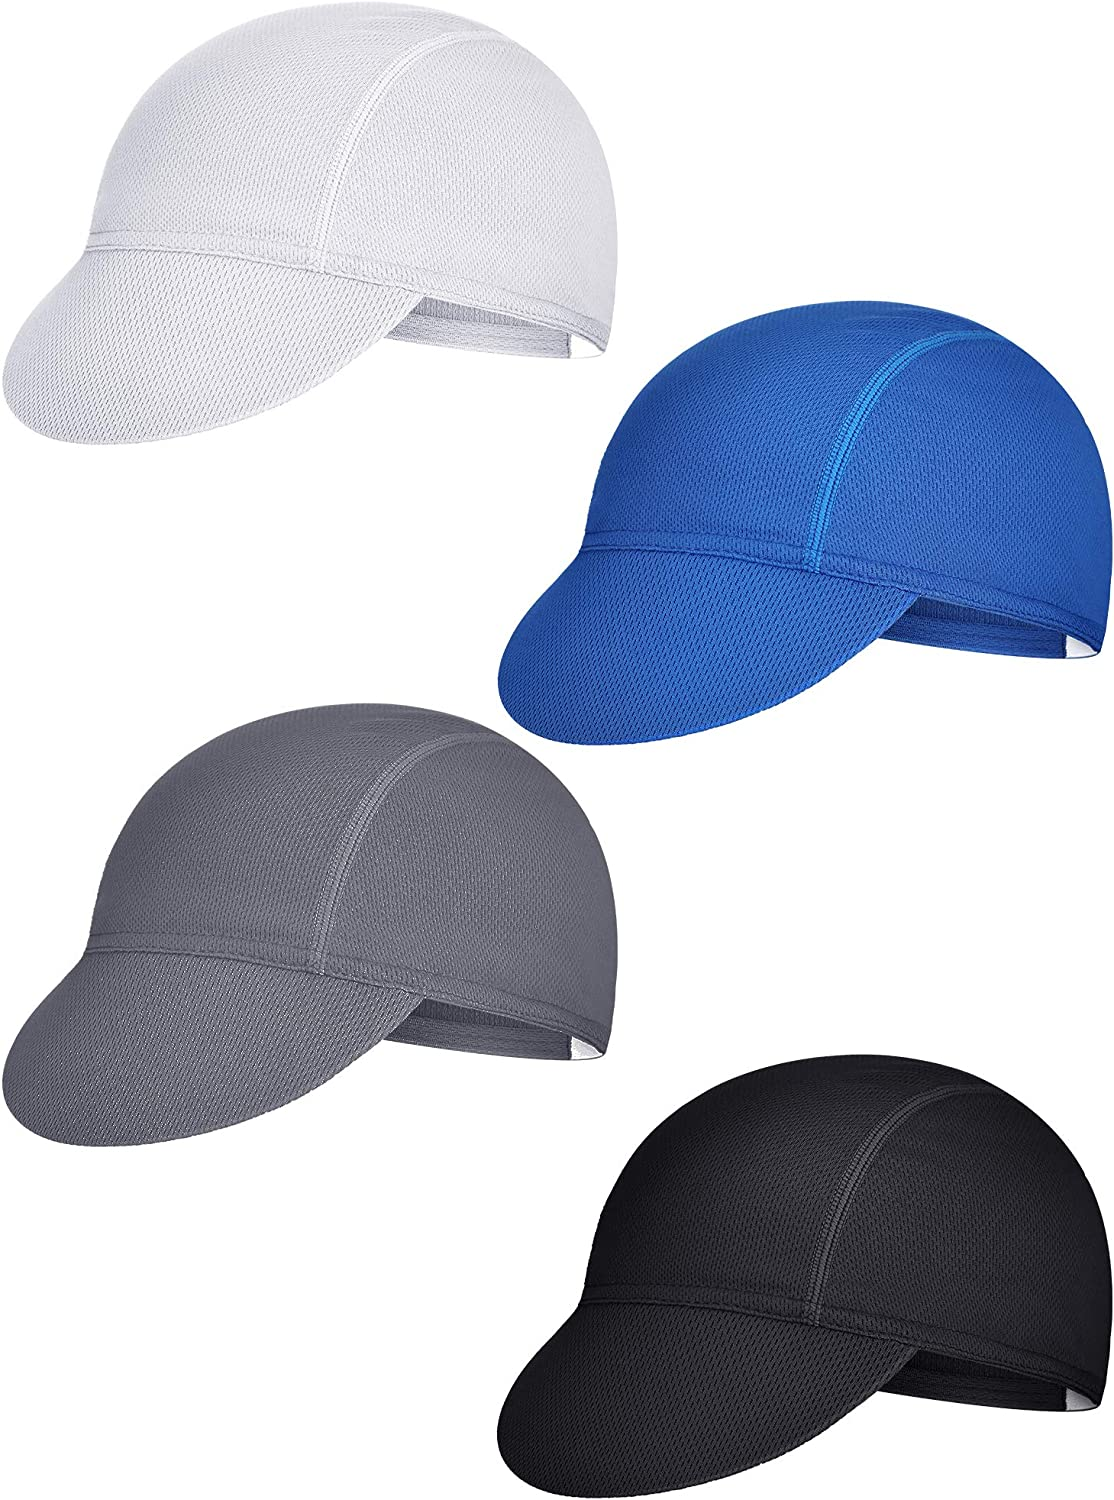 4 Pieces Summer Unisex Cycling Cap Breathable Bicycle Rare Under blast sales Caps Sweat